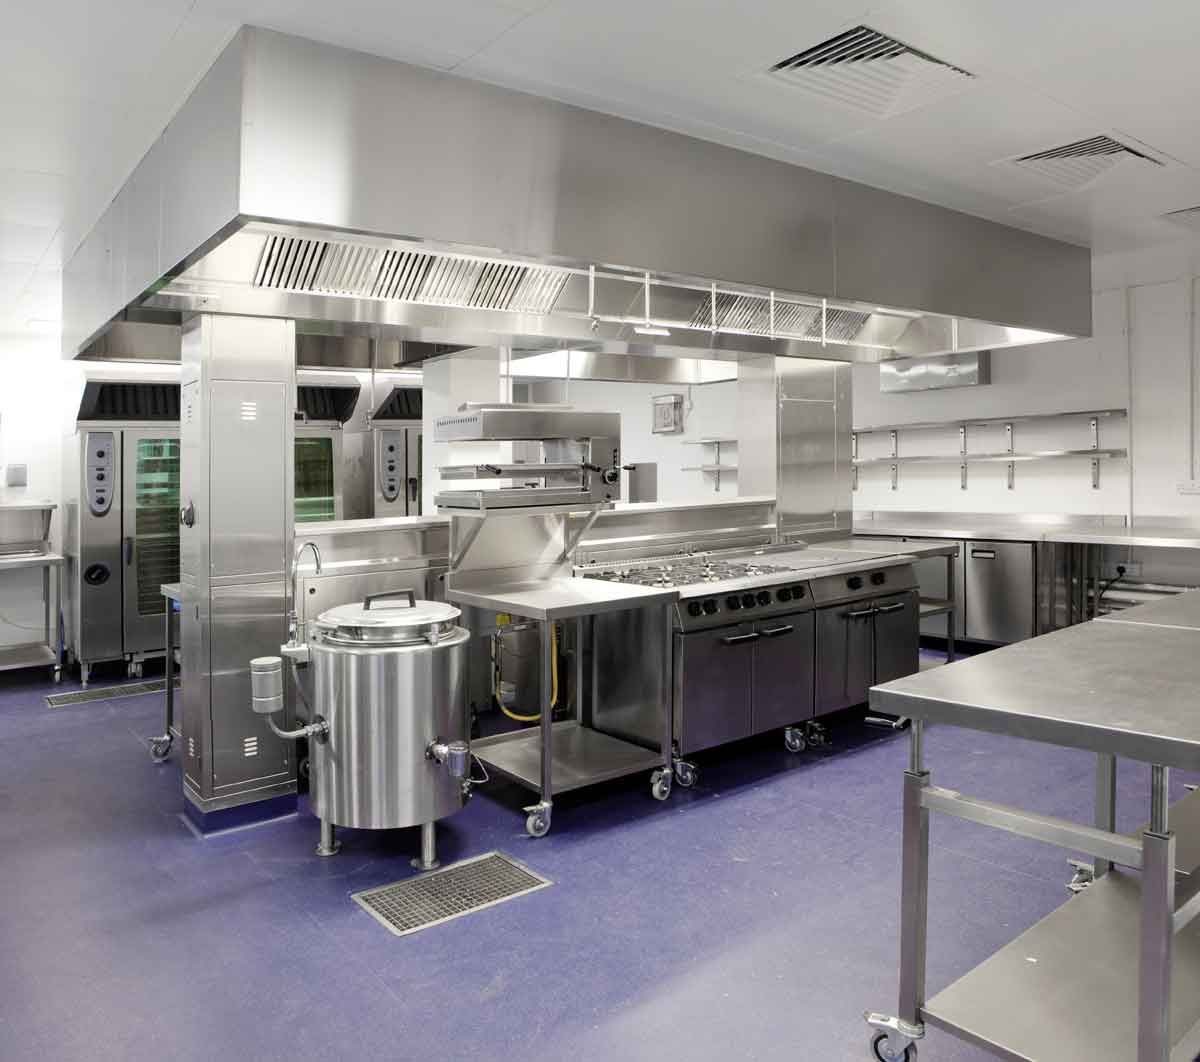 stainless restaurants kitchens pinterest restaurant kitchen